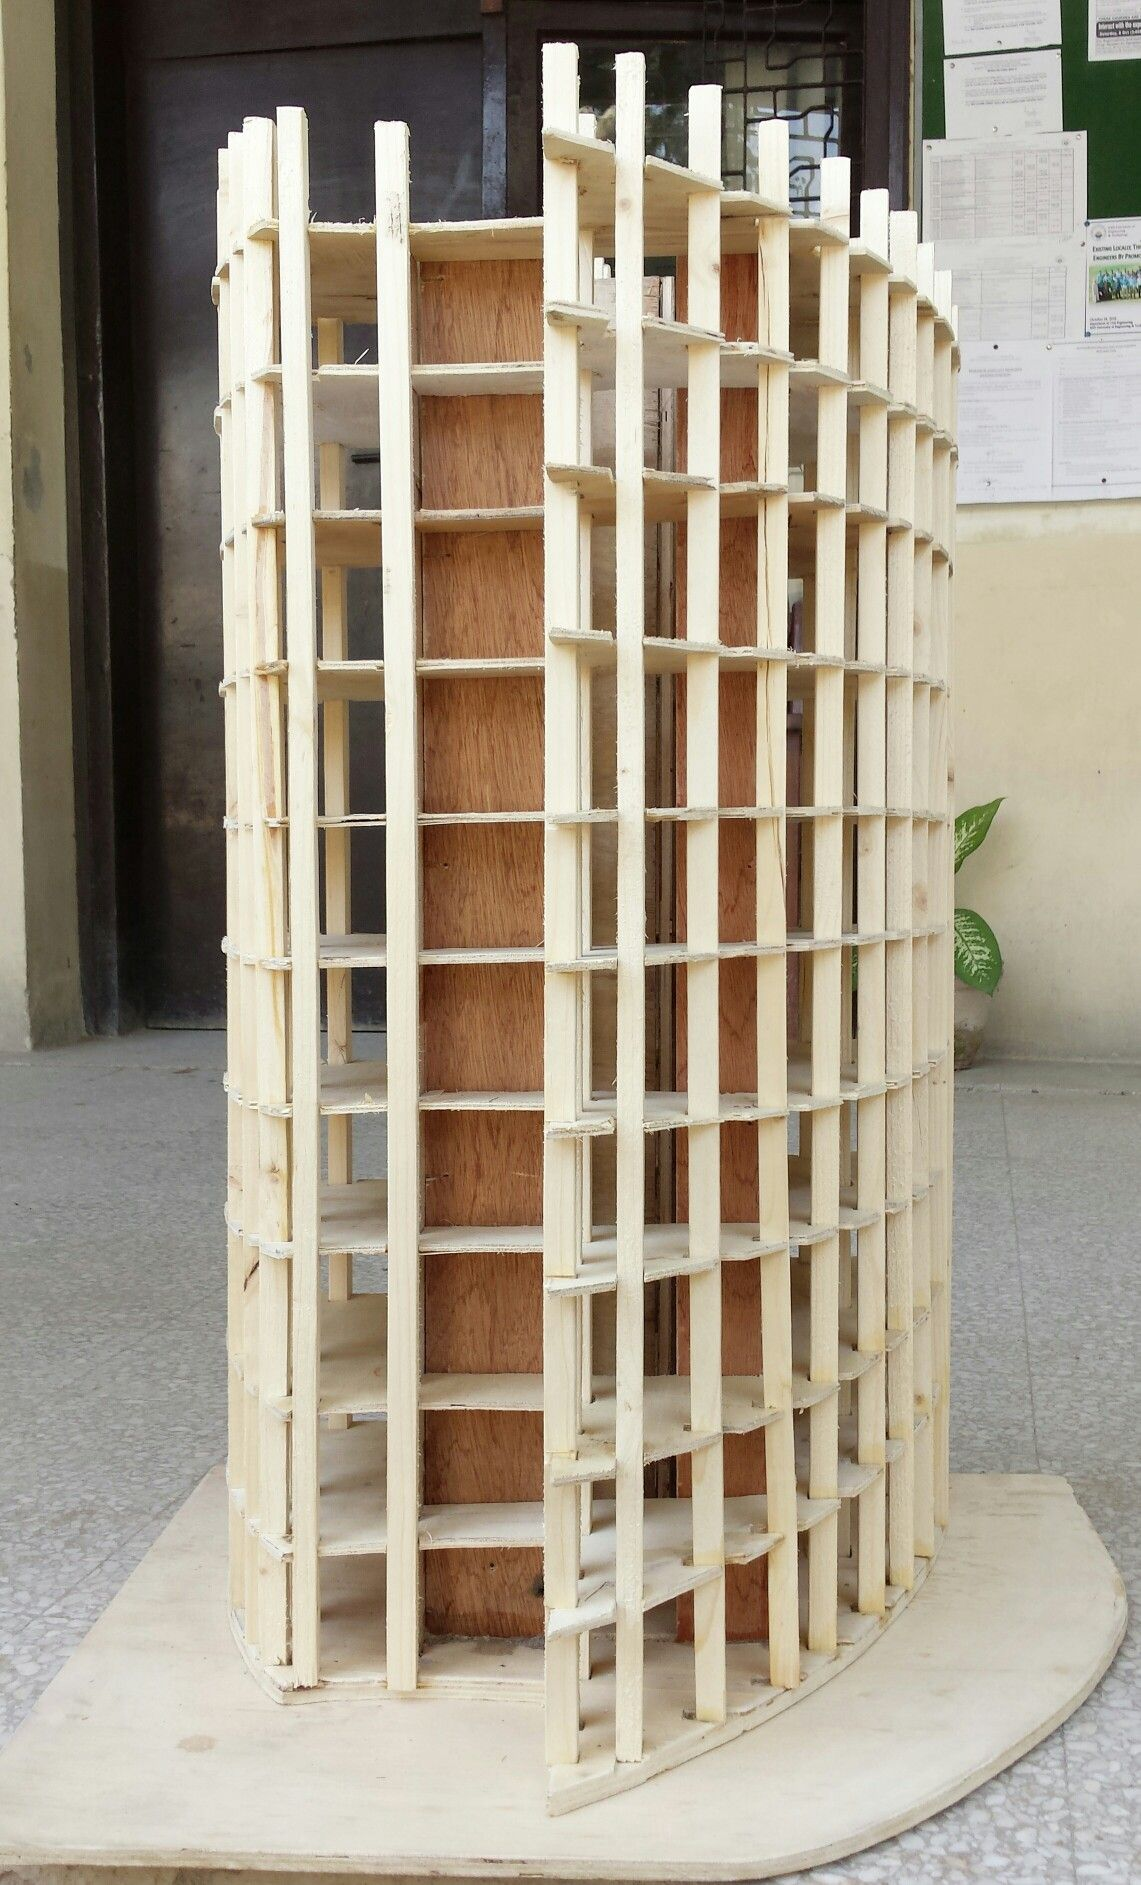 Structure model of high rise building